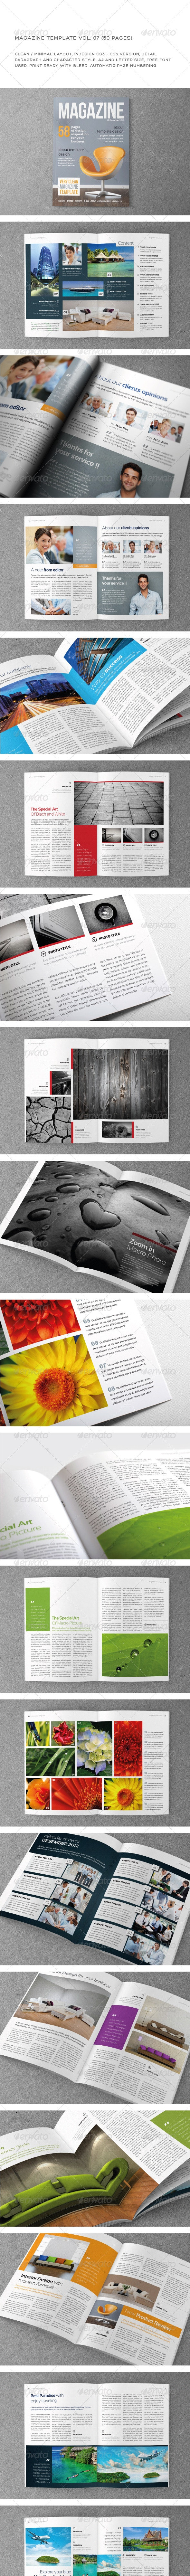 A4/Letter 50 Pages mgz (Vol. 7) - Magazines Print Templates